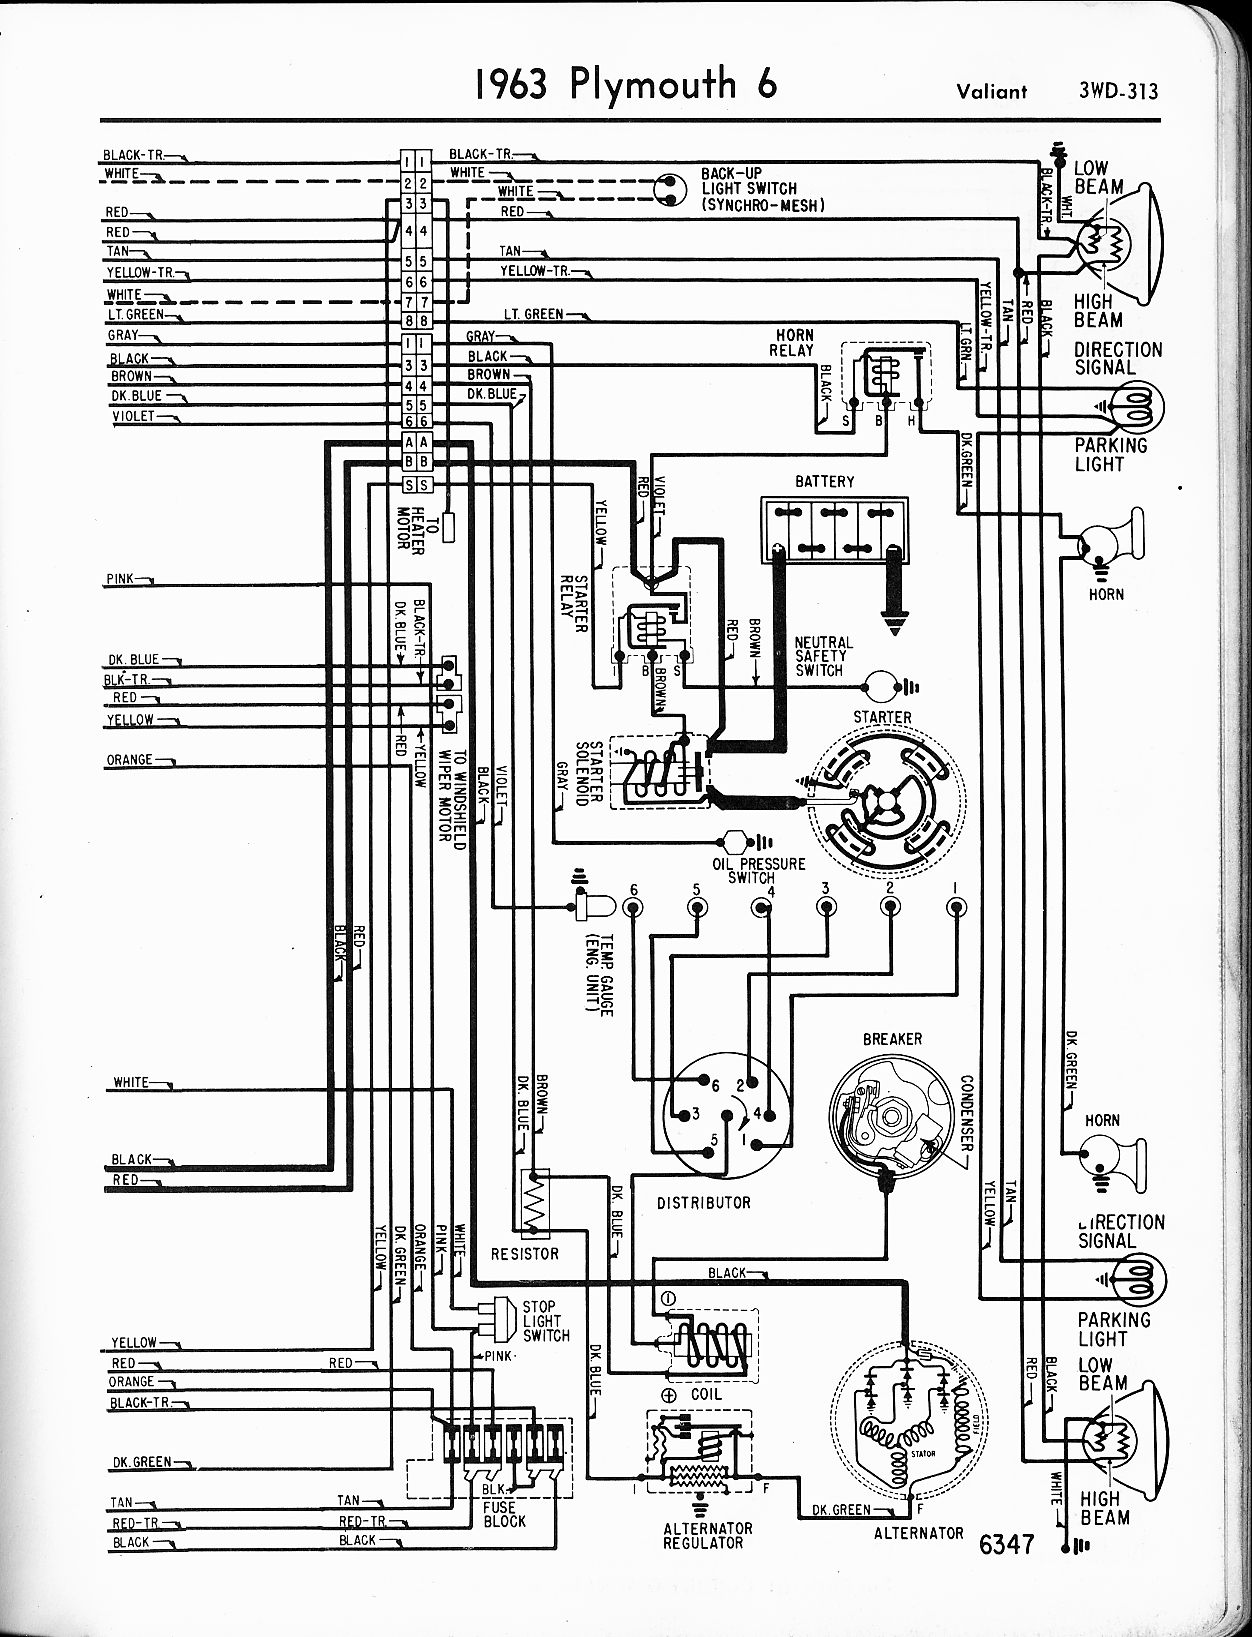 74 Plymouth Satellite Wiring Diagram Simple Guide About Ezgo Marathon Light Kit 1956 1965 The Old Car Manual Project